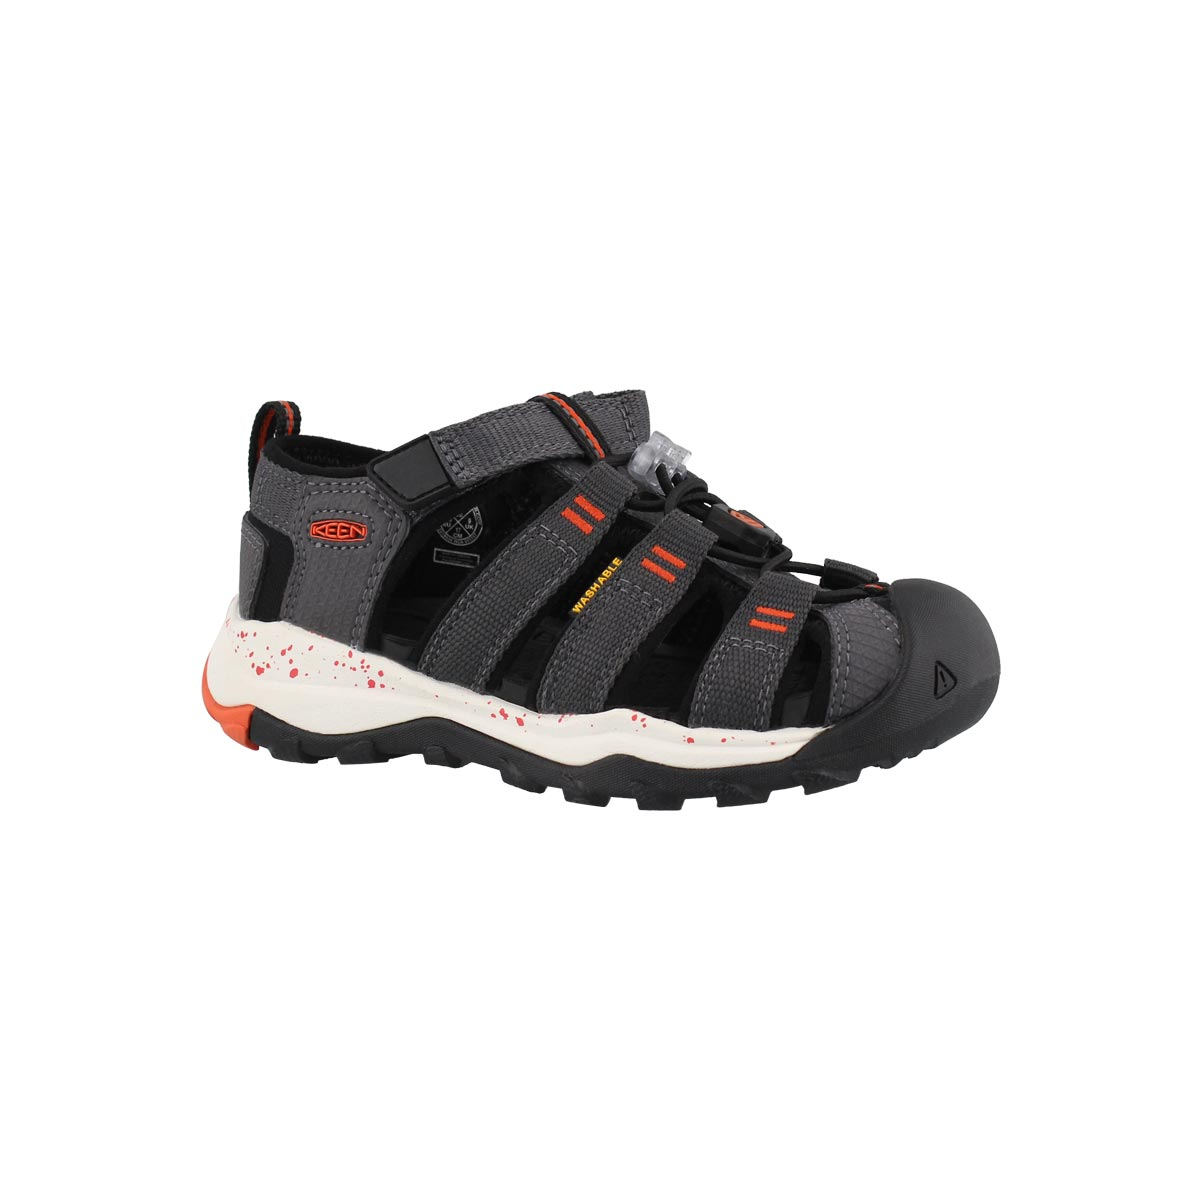 Infants' NEWPORT NEO H2 mag/spcy org sandals